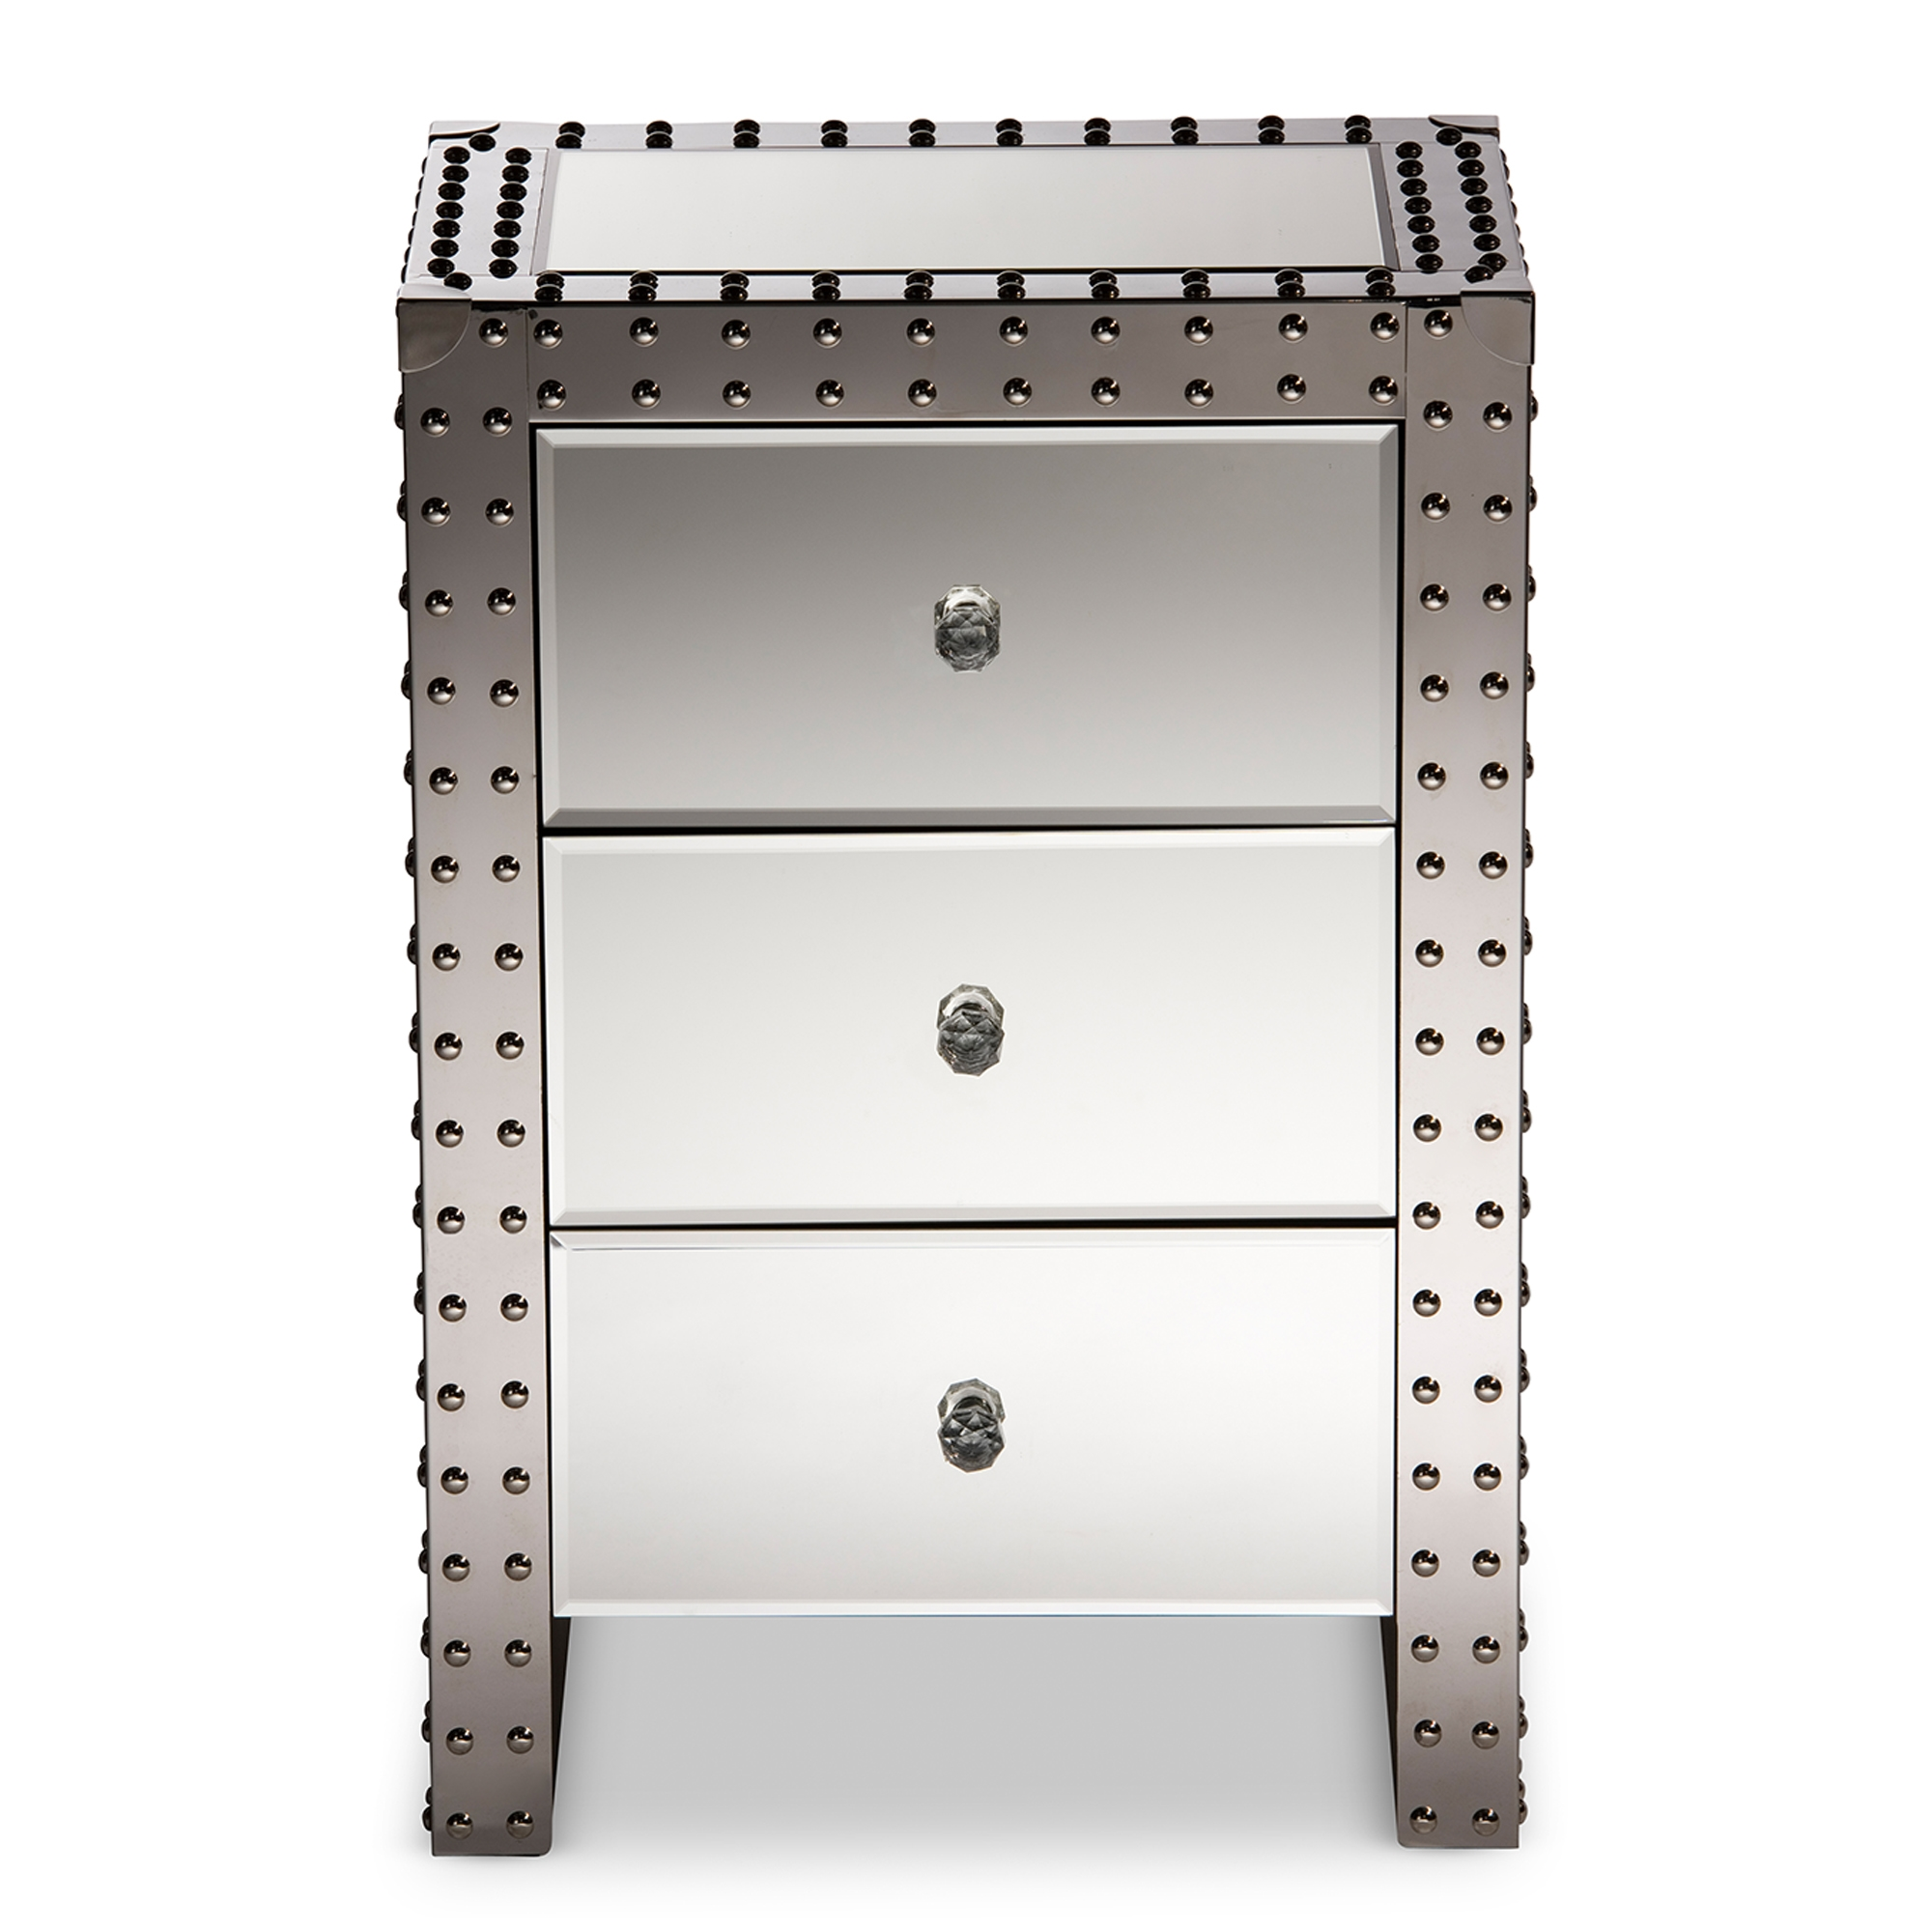 Vegas white glass mirrored bedside tables Tables Dresser Baxton Studio Wholesale End Tables Wholesale Living Room Furniture Wholesale Furniture Adocavo Baxton Studio Wholesale End Tables Wholesale Living Room